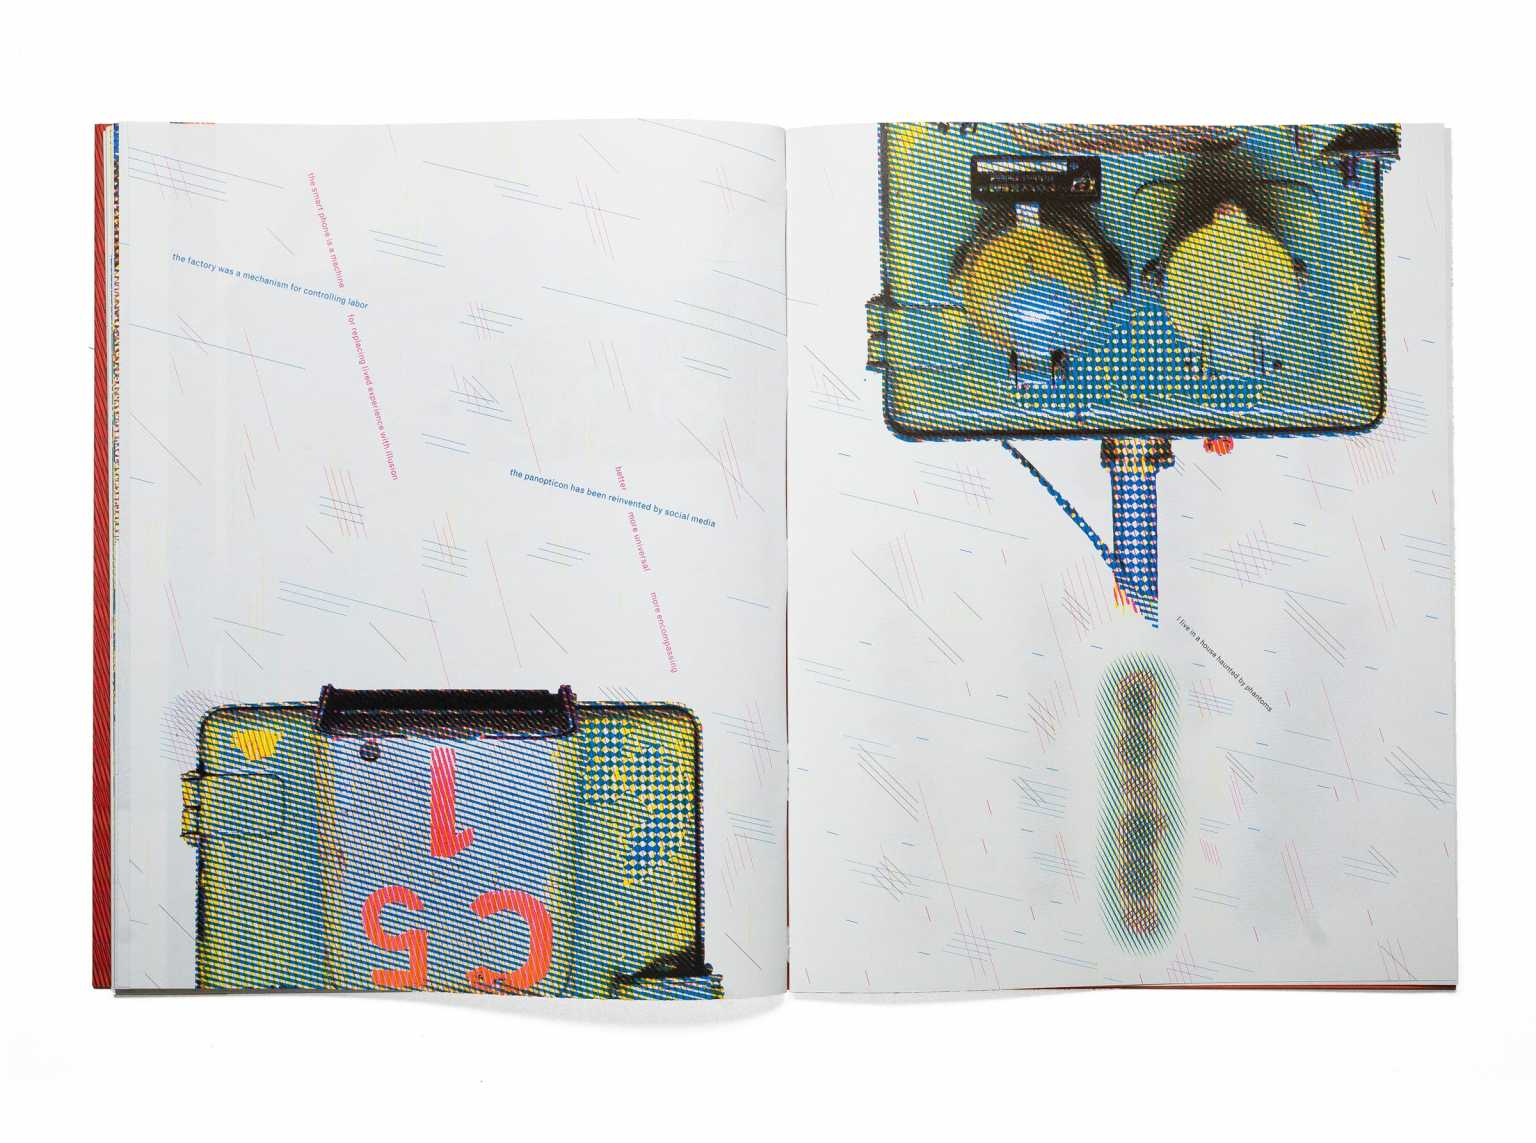 Page spread from artist's book Control Mechanism, 2020, Offset lithographed in fluorescent colors, 56 pages